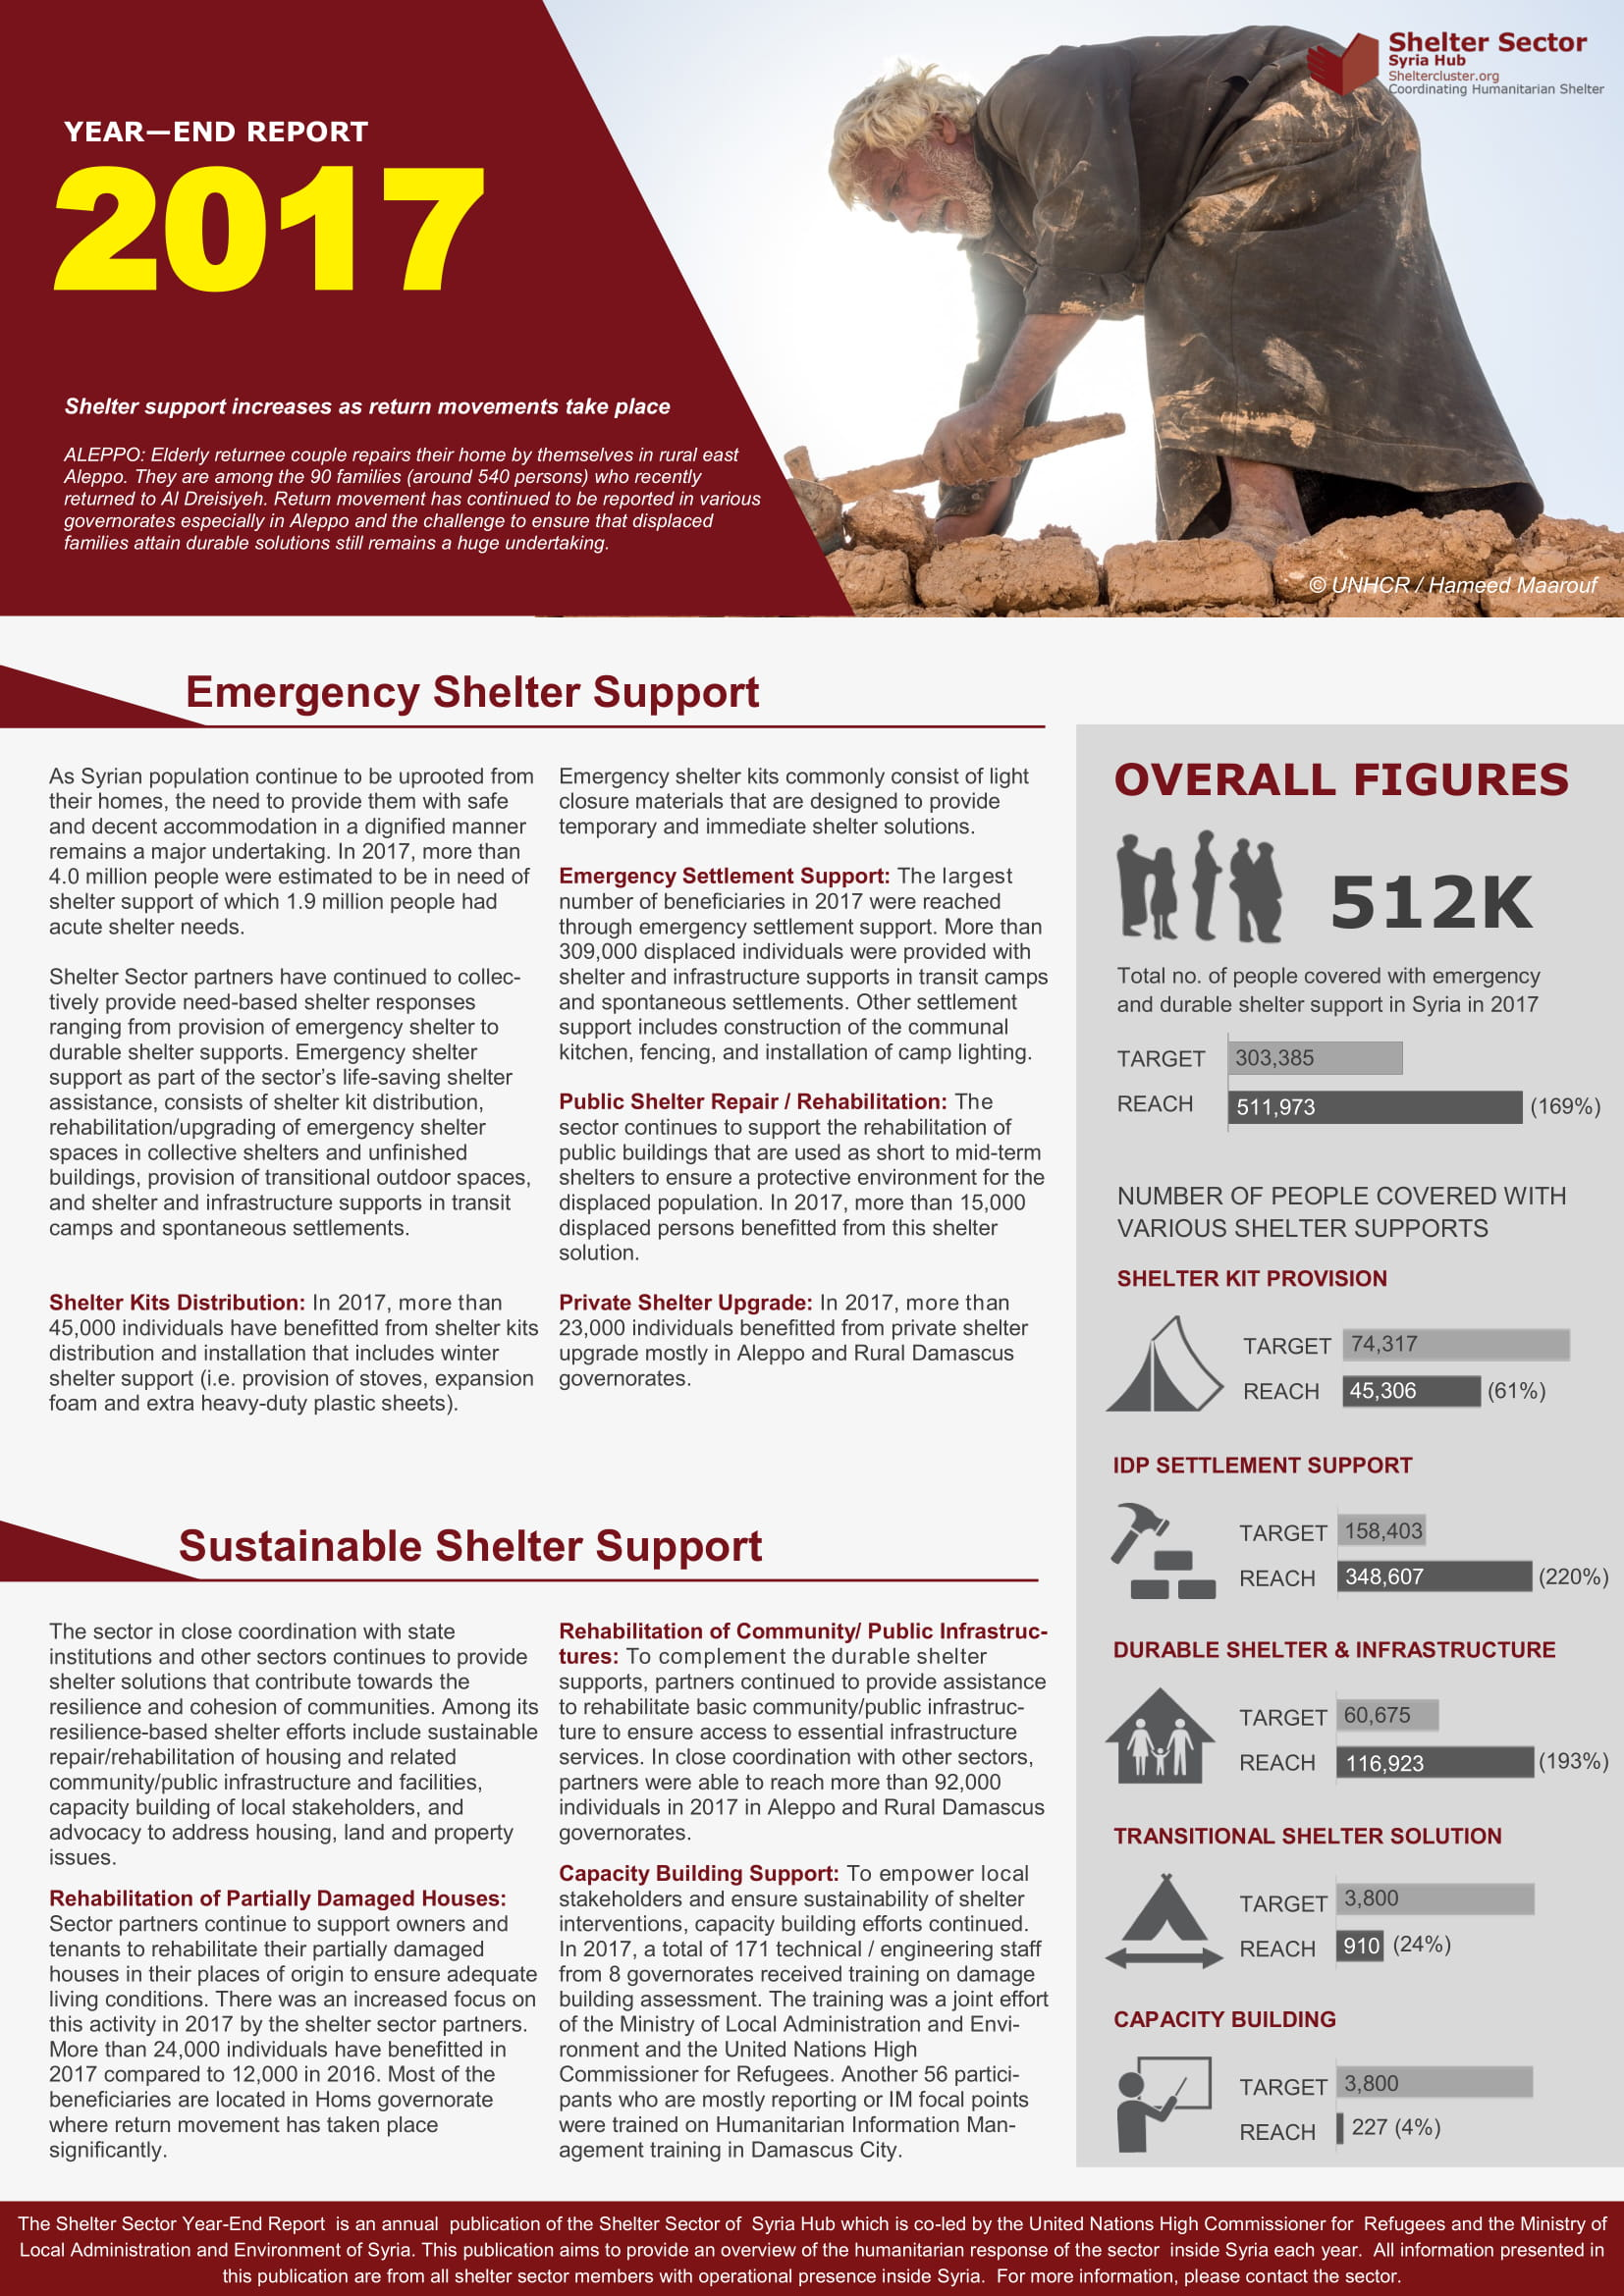 shelter sector year end report example